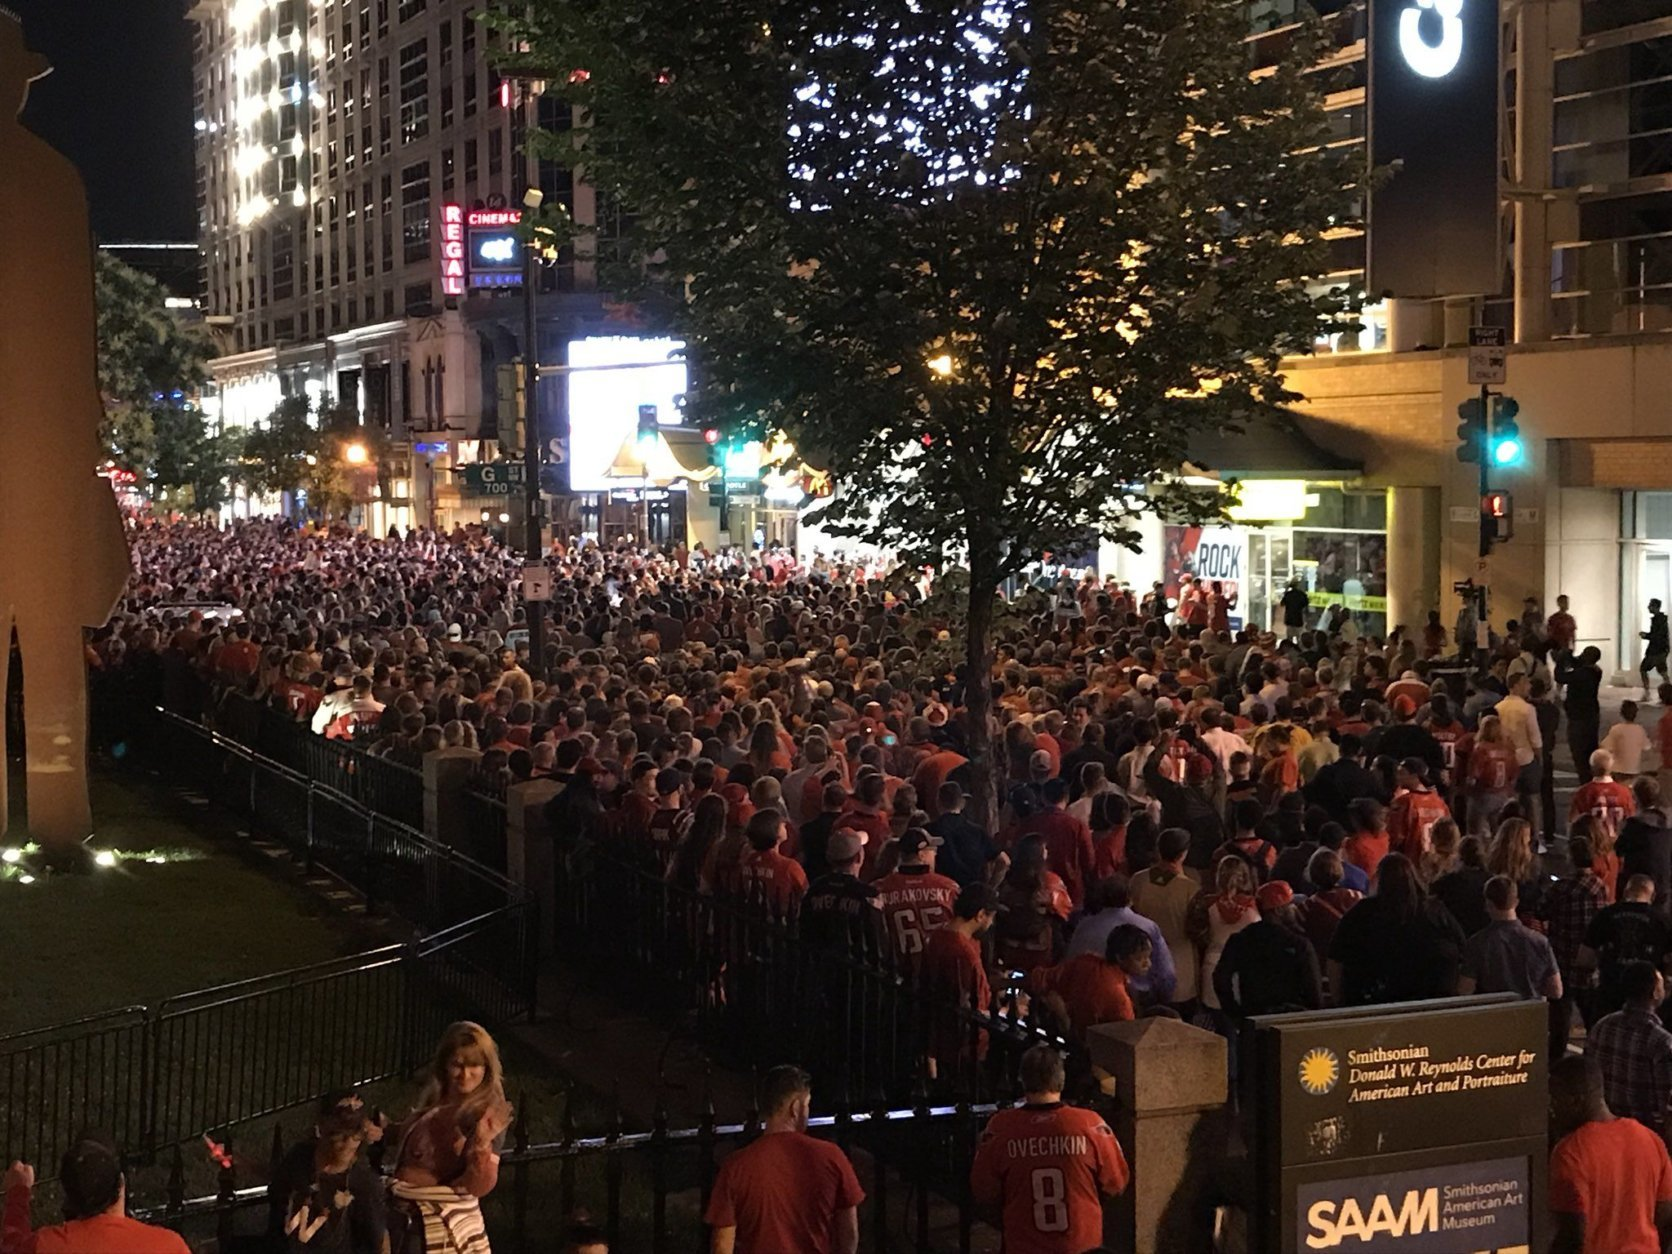 Fans of the Washington Capitals follow the Game 4 matchup outside the Capital One Arena in Washington, D.C. on Monday, June 4, 2018. (WTOP/Michelle Basch)